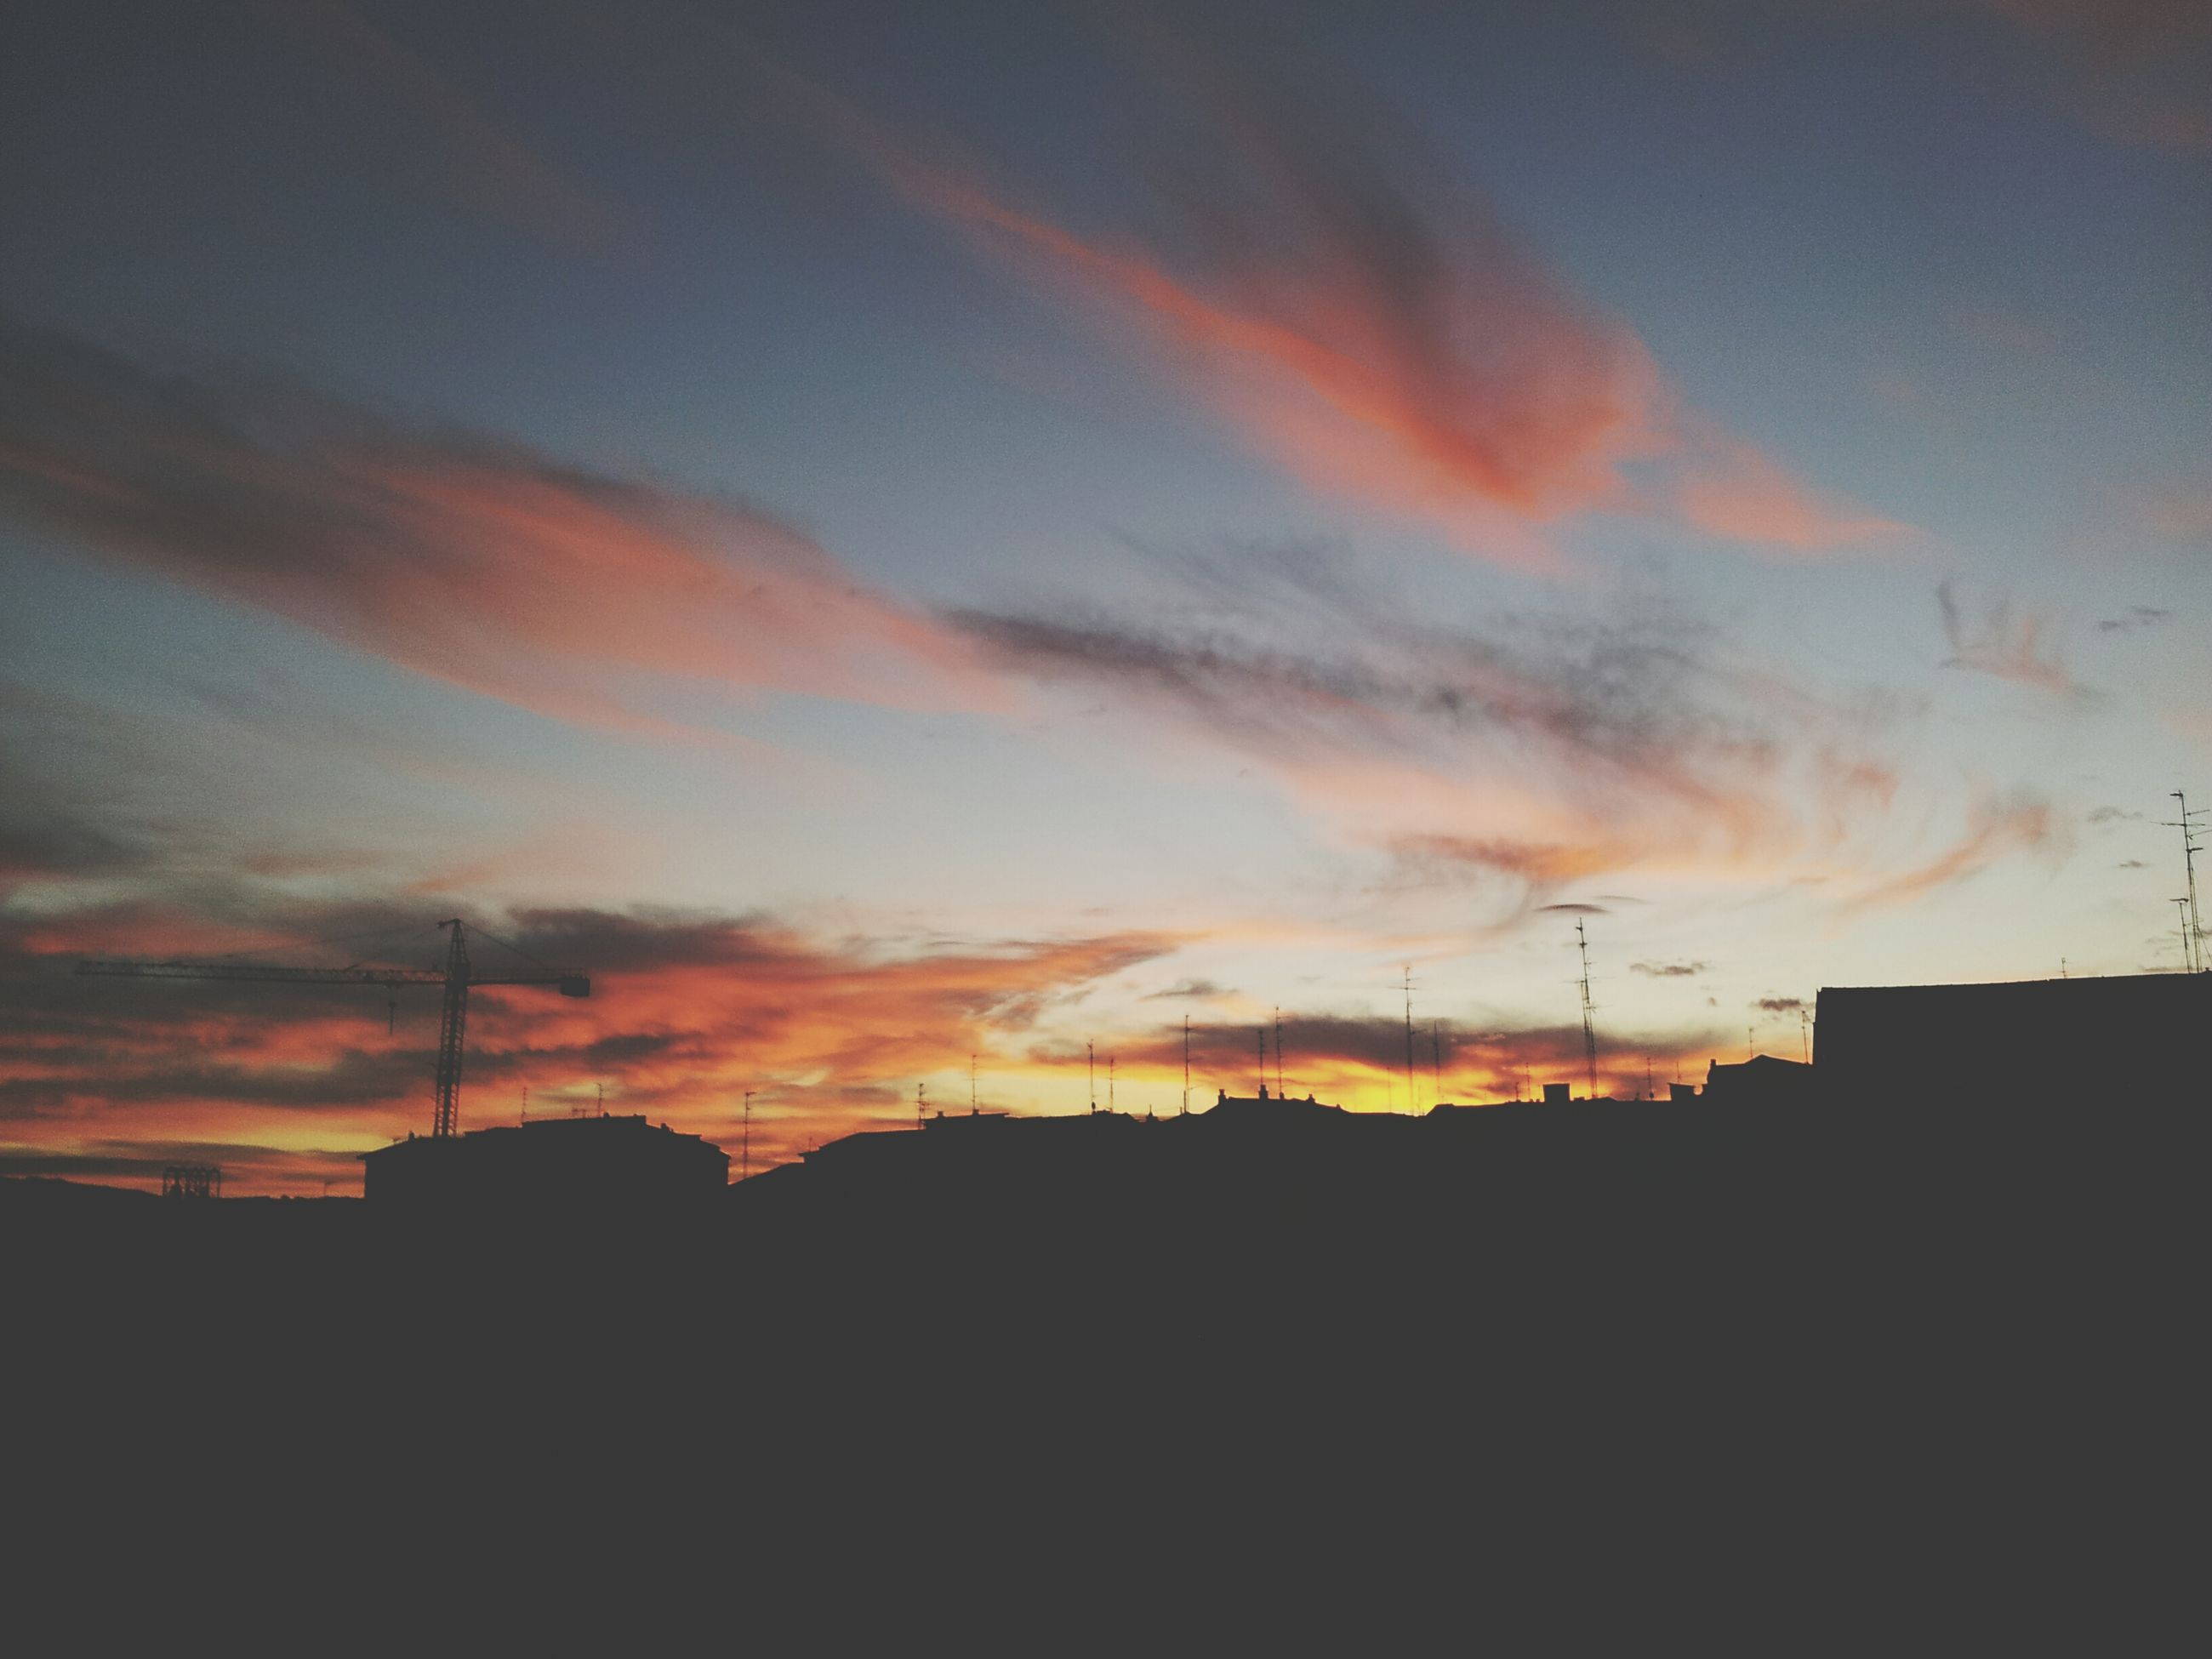 sunset, silhouette, orange color, sky, building exterior, built structure, architecture, cloud - sky, low angle view, beauty in nature, dramatic sky, nature, scenics, dusk, cloud, outdoors, city, no people, dark, building